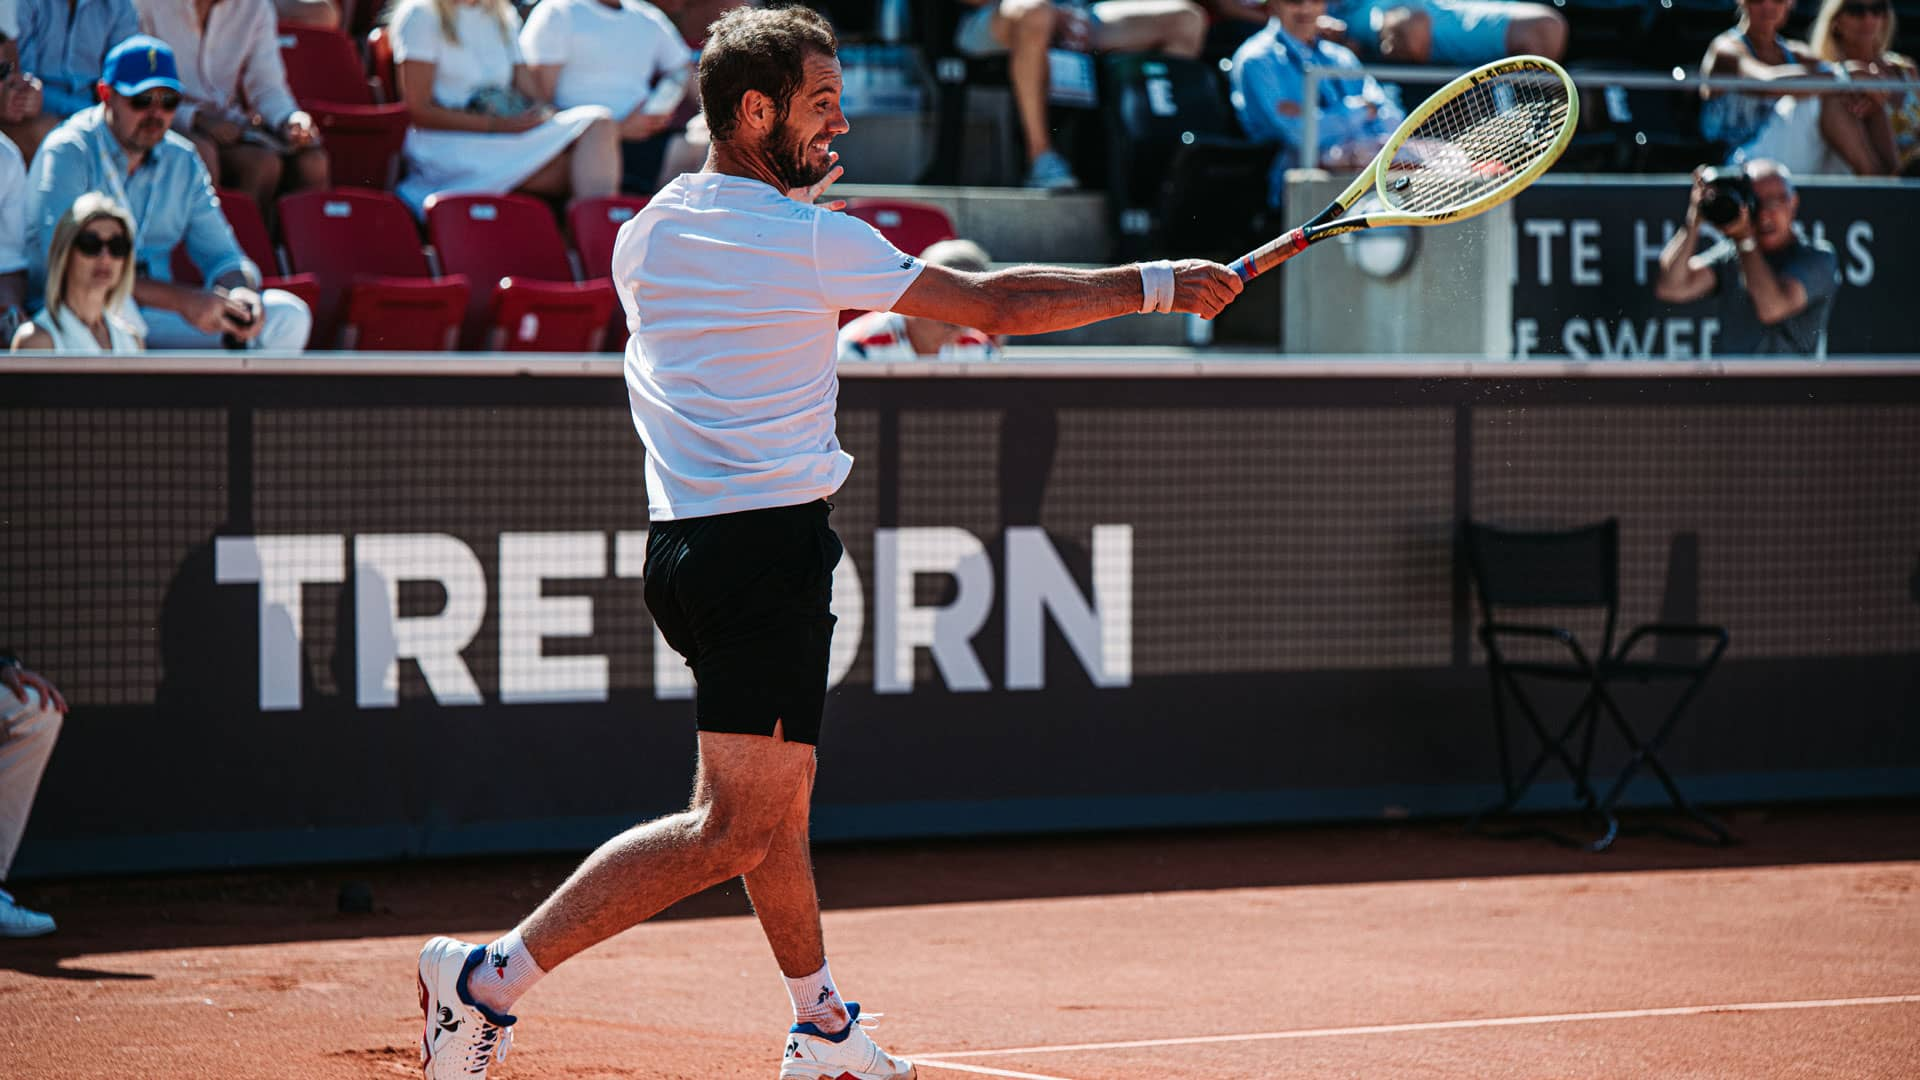 Richard Gasquet hits a forehand in 2019 Bastad